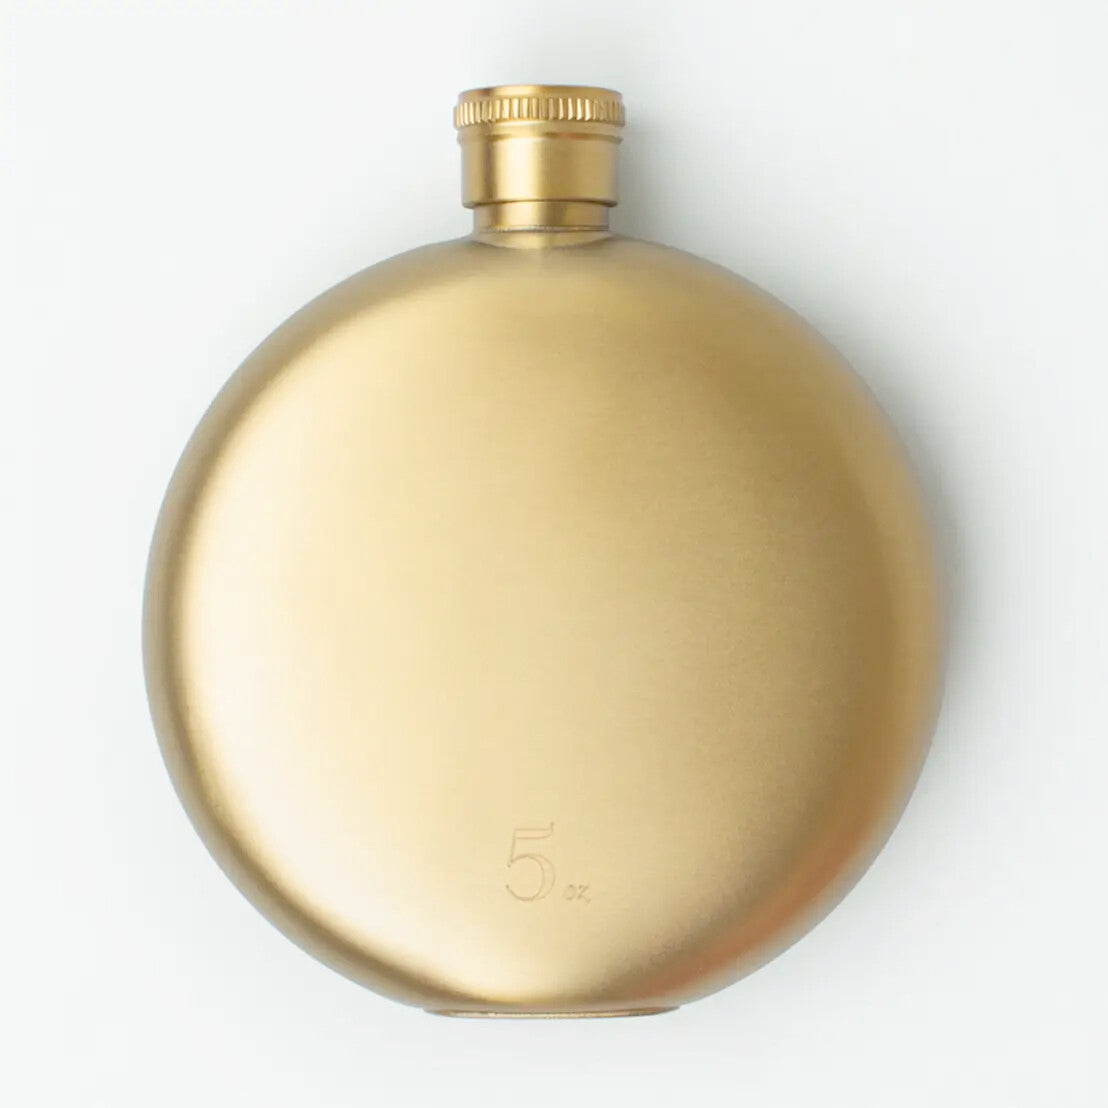 Gold 5 oz Flask